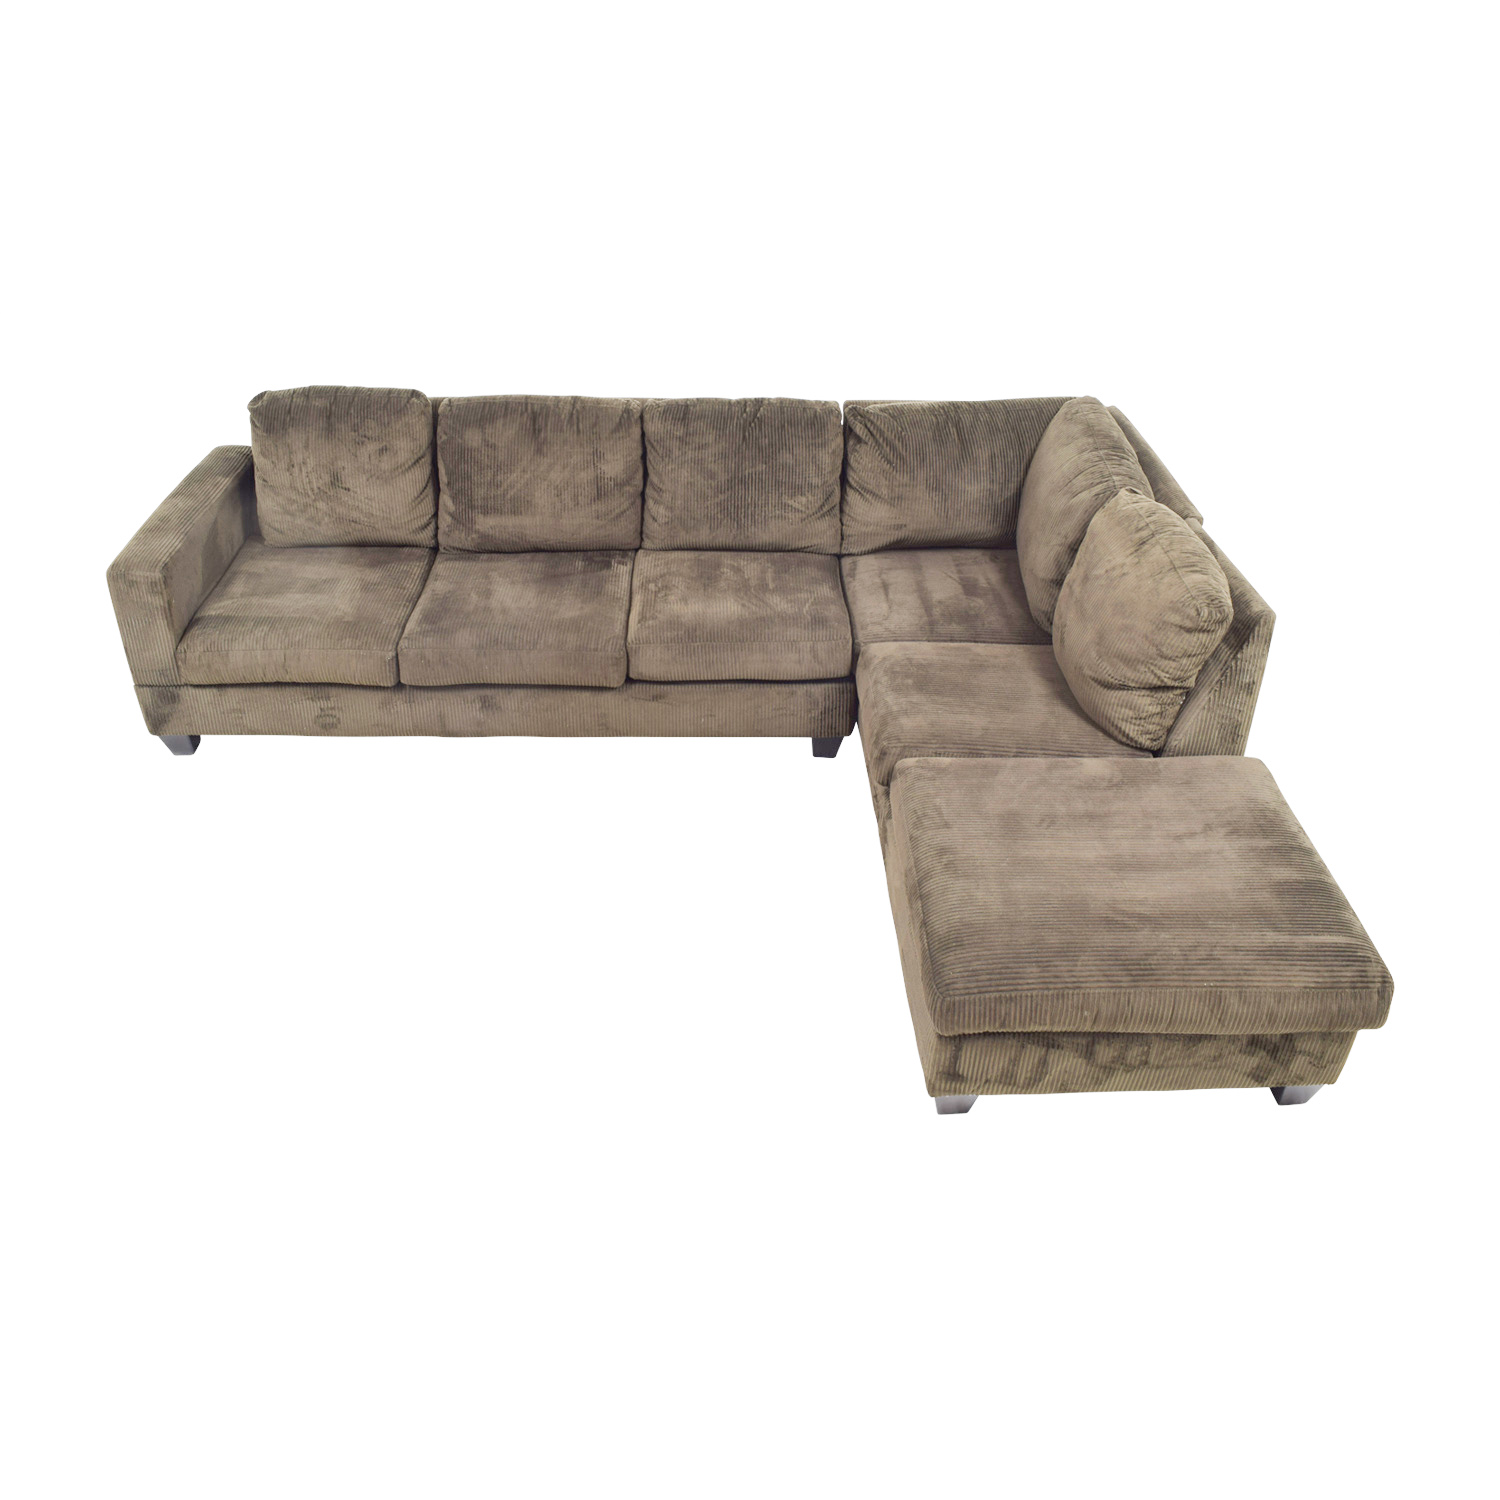 Jennifer Convertibles Jennifer Convertibles Corduroy Brown Sectional Sofas